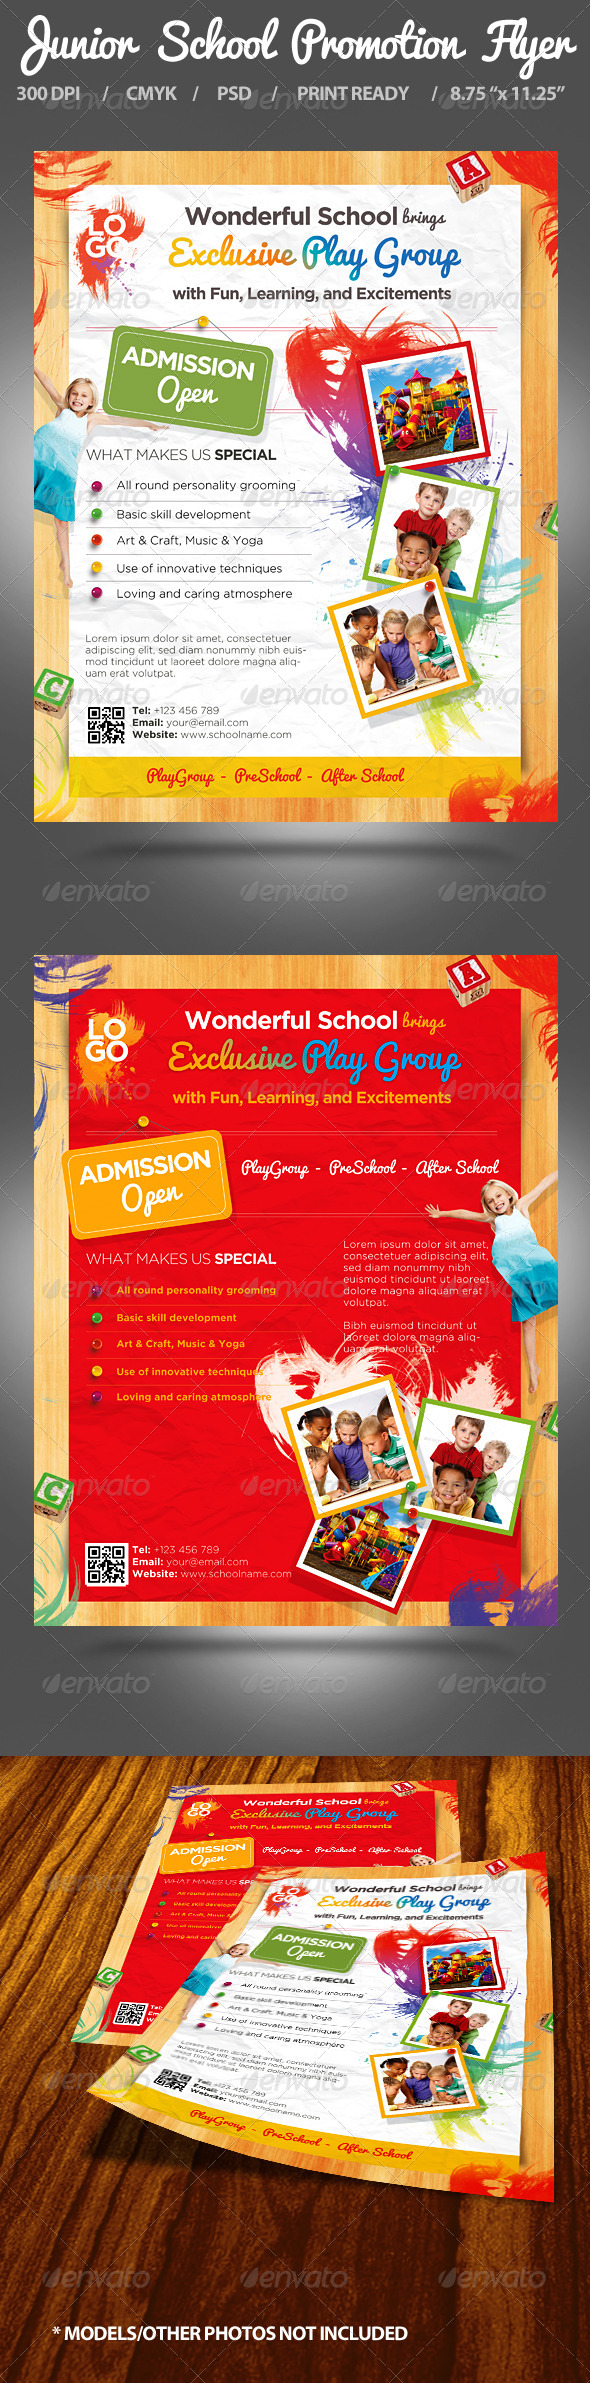 GraphicRiver Junior School Promotion Flyers 5046644